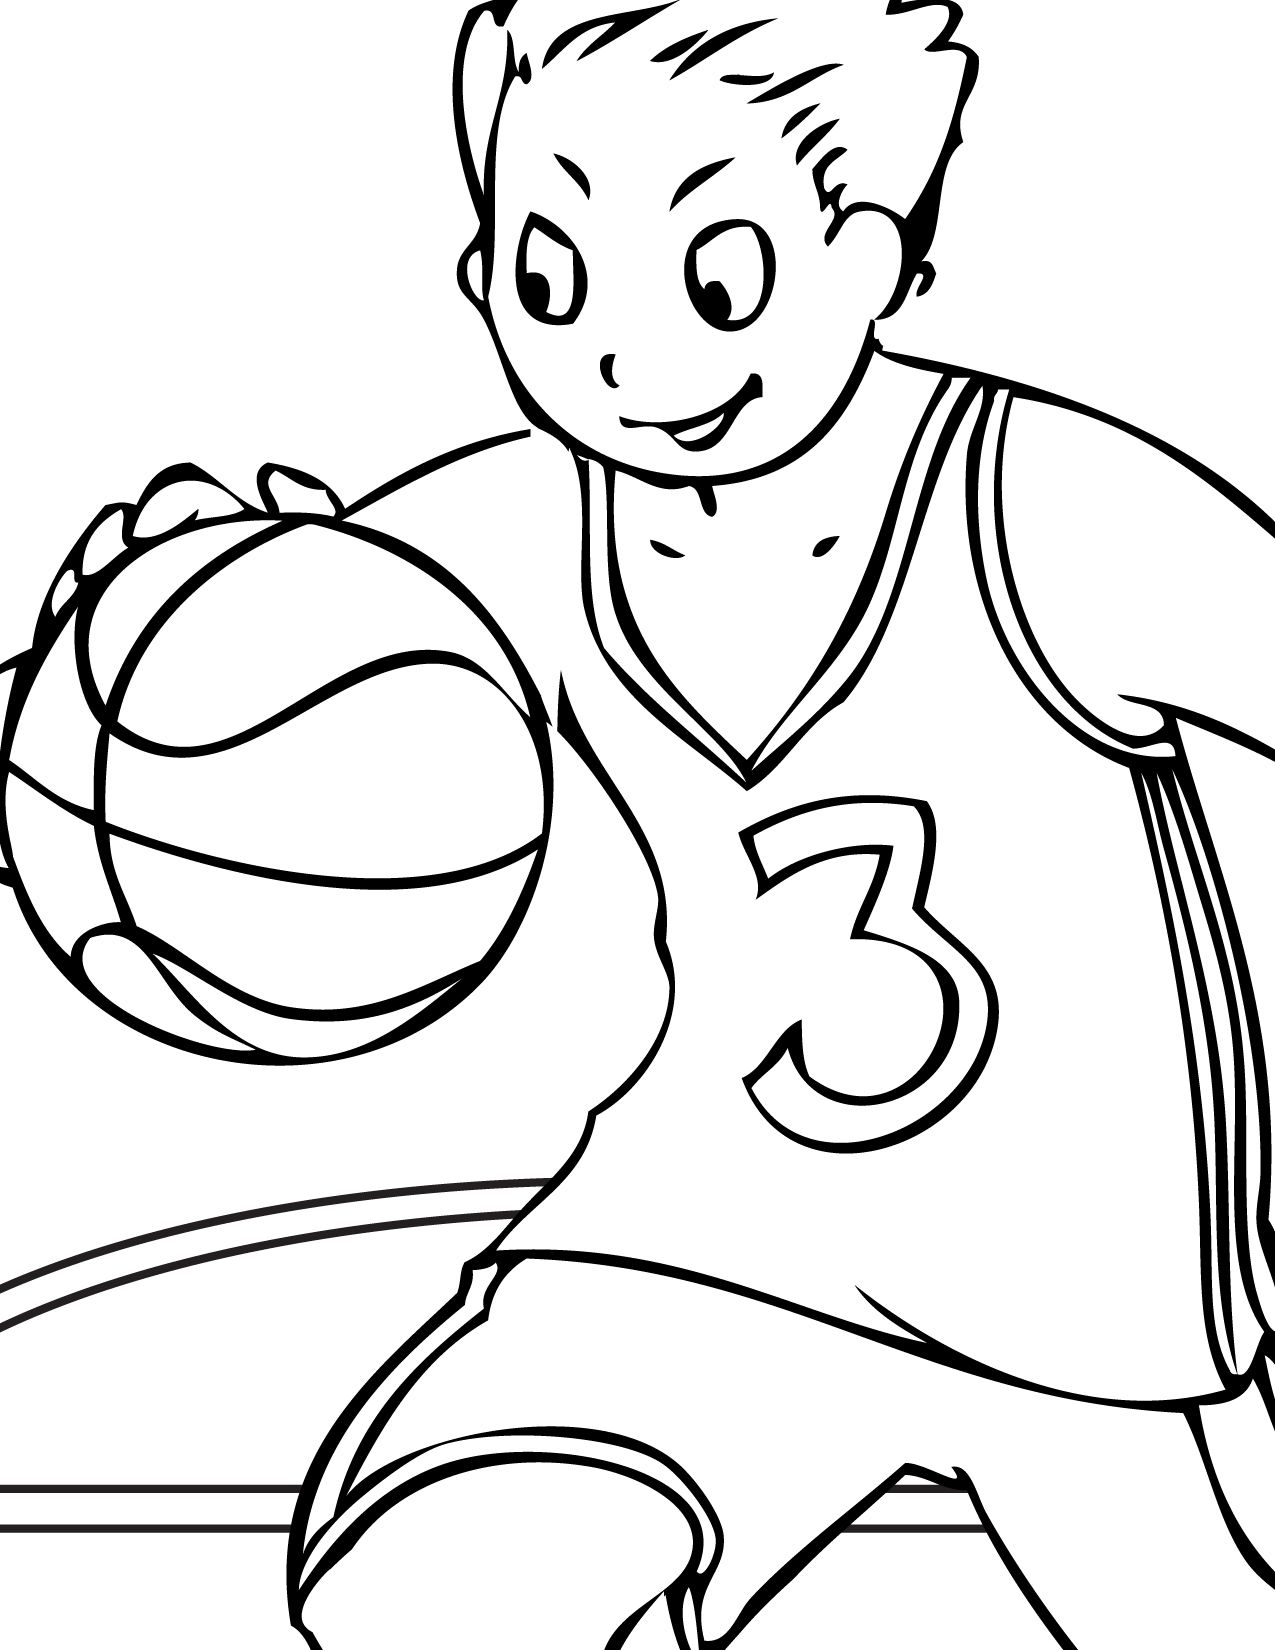 Free Printable Volleyball Coloring Pages For Kids | Sports ...